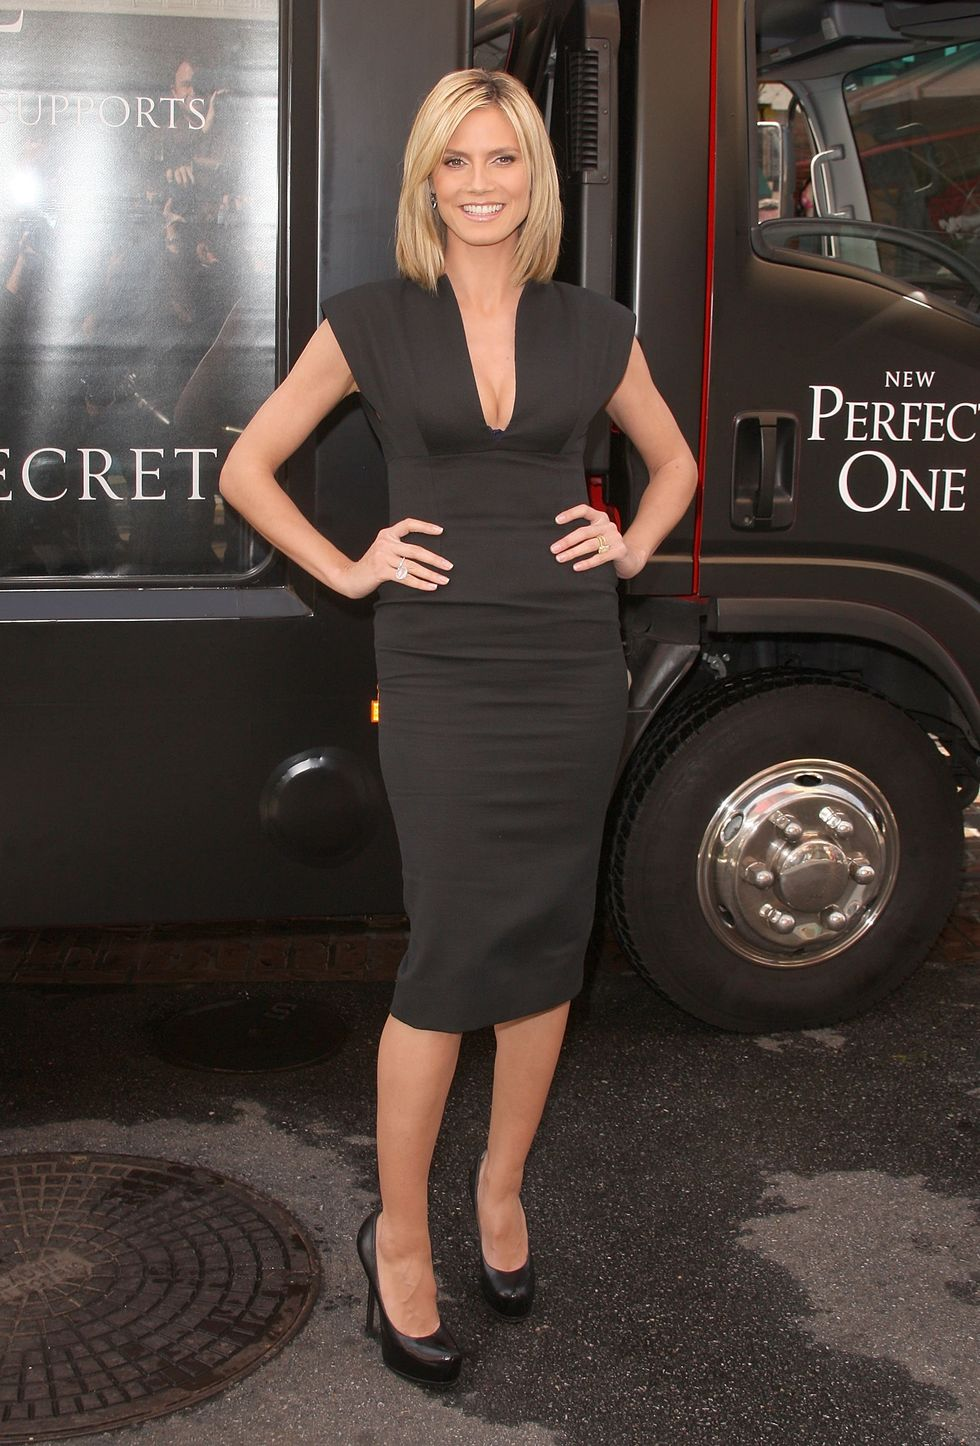 heidi-klum-the-perfect-one-bra-unveiling-in-los-angeles-09